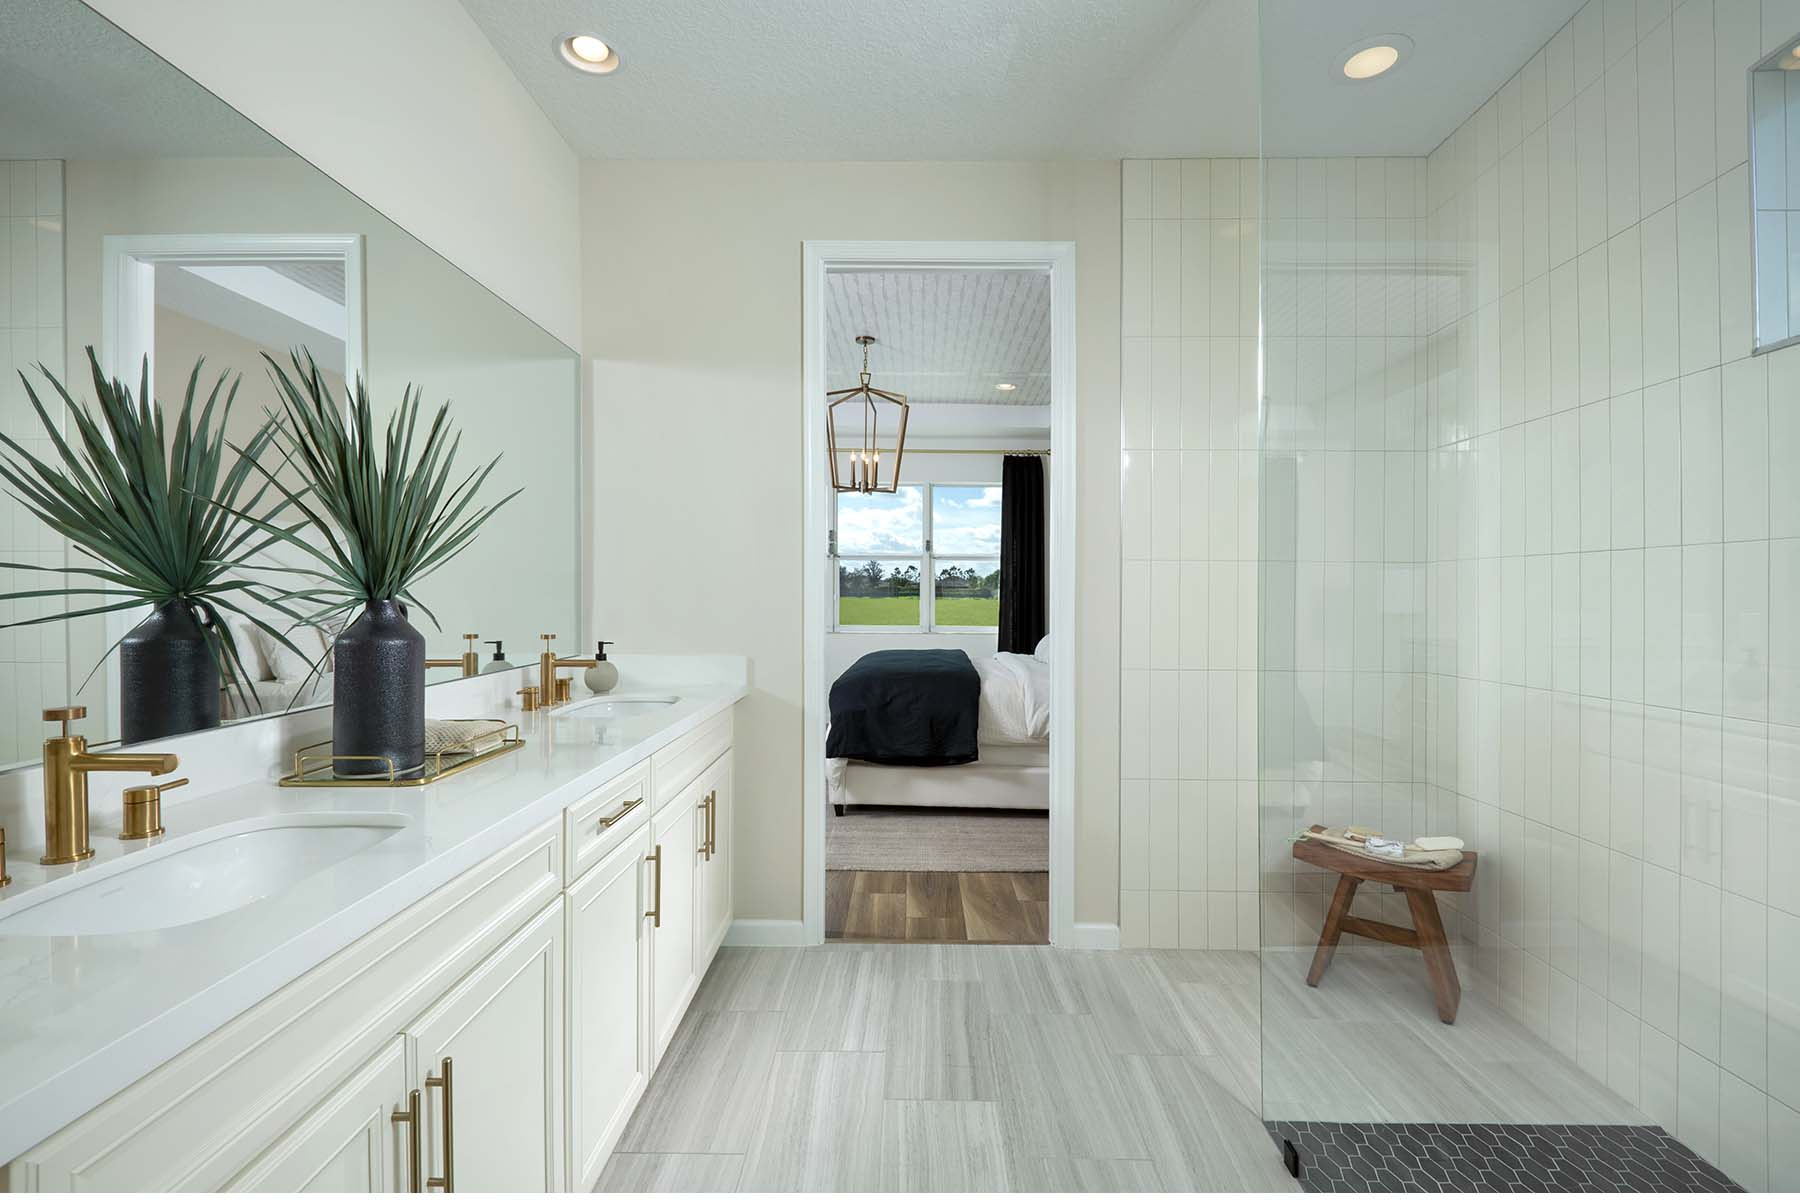 Dahlia Plan Bathroom_Master Bath at Tradition - Manderlie in Port St. Lucie Florida by Mattamy Homes